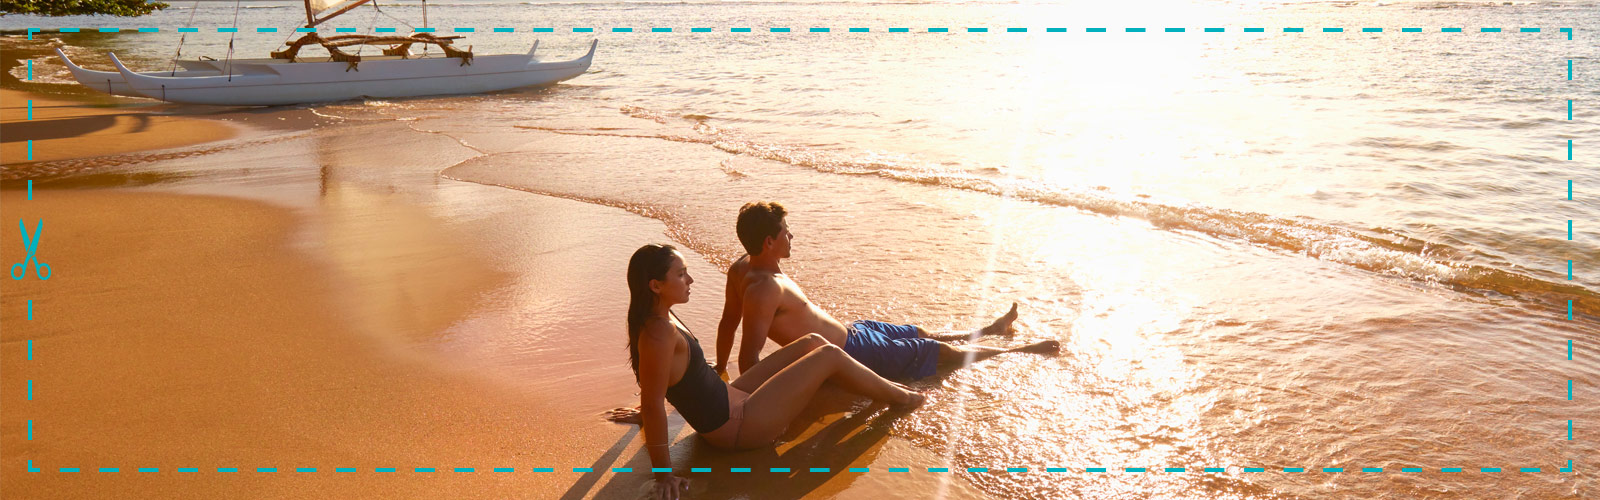 Couple lying on the beach with a dotted cutout line around the image.